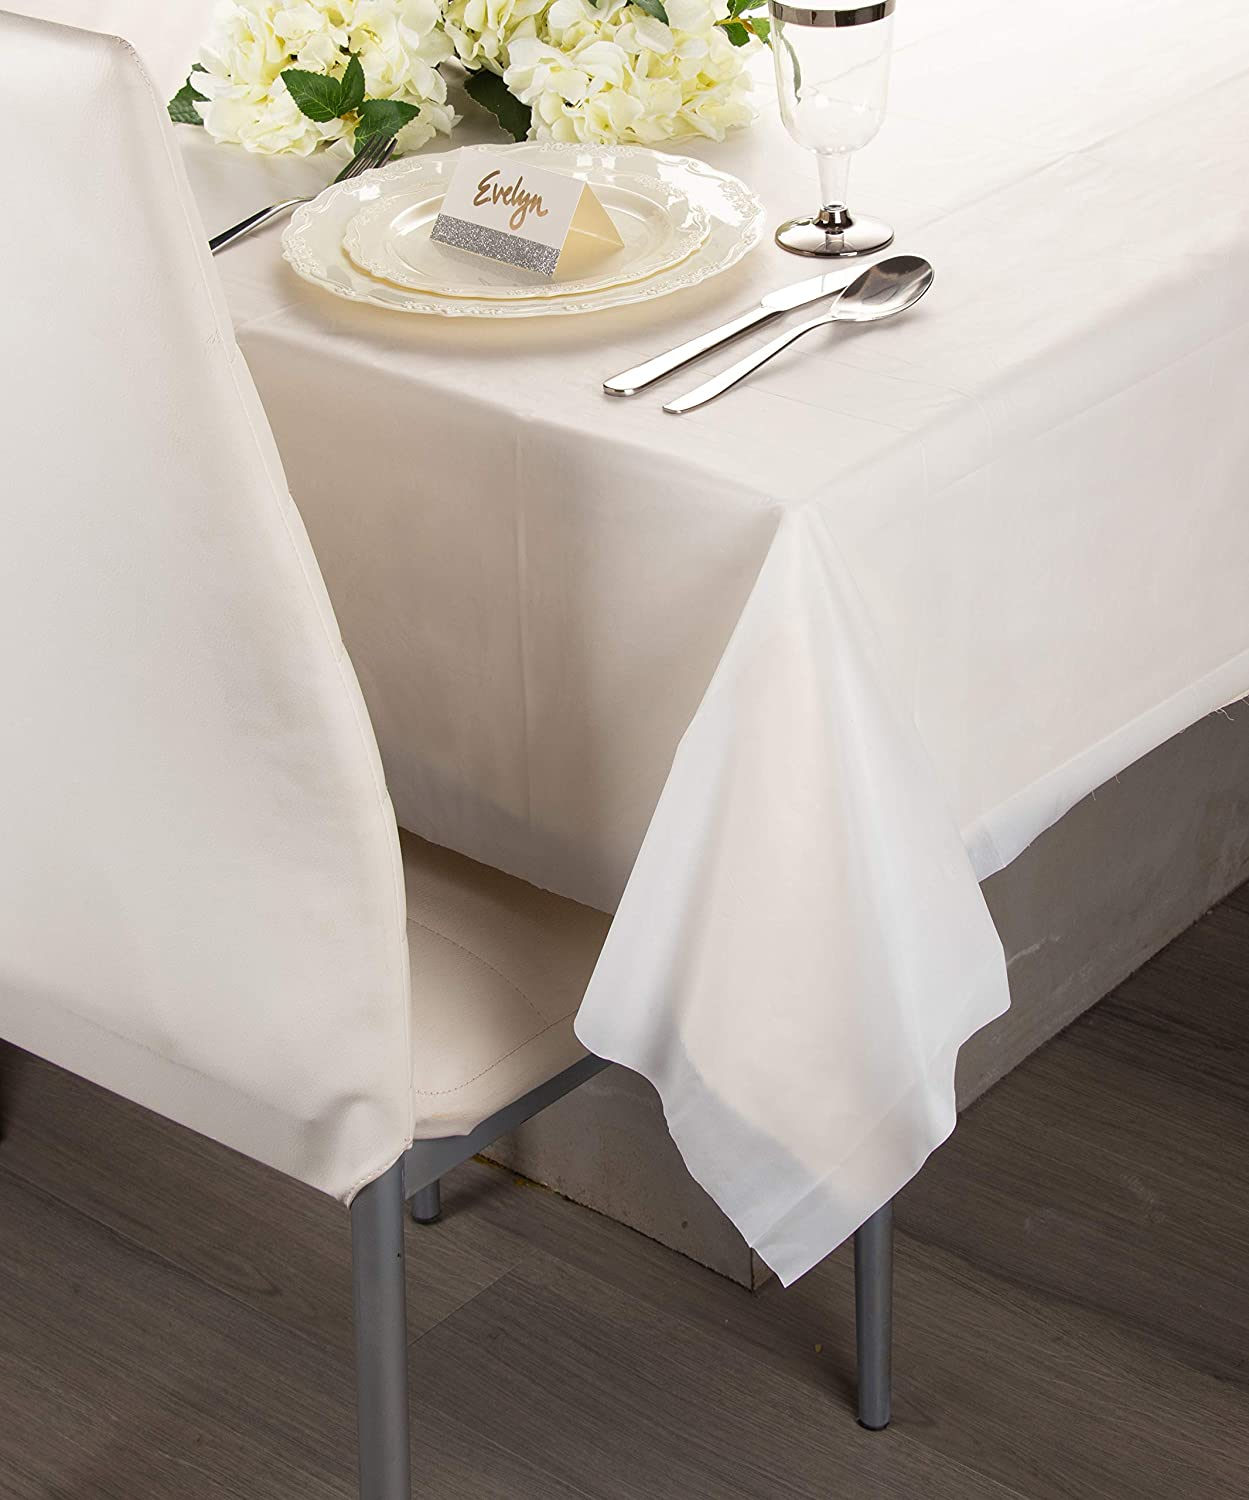 Party Decoration Supplies 12-Pack Buffet Banquets or Long Picnic Tables White Plastic Tablecloths 4.5 x 54 x 108 Inches Table Cloths Rectangular Disposable Table Covers Fits up to 8-Foot Long